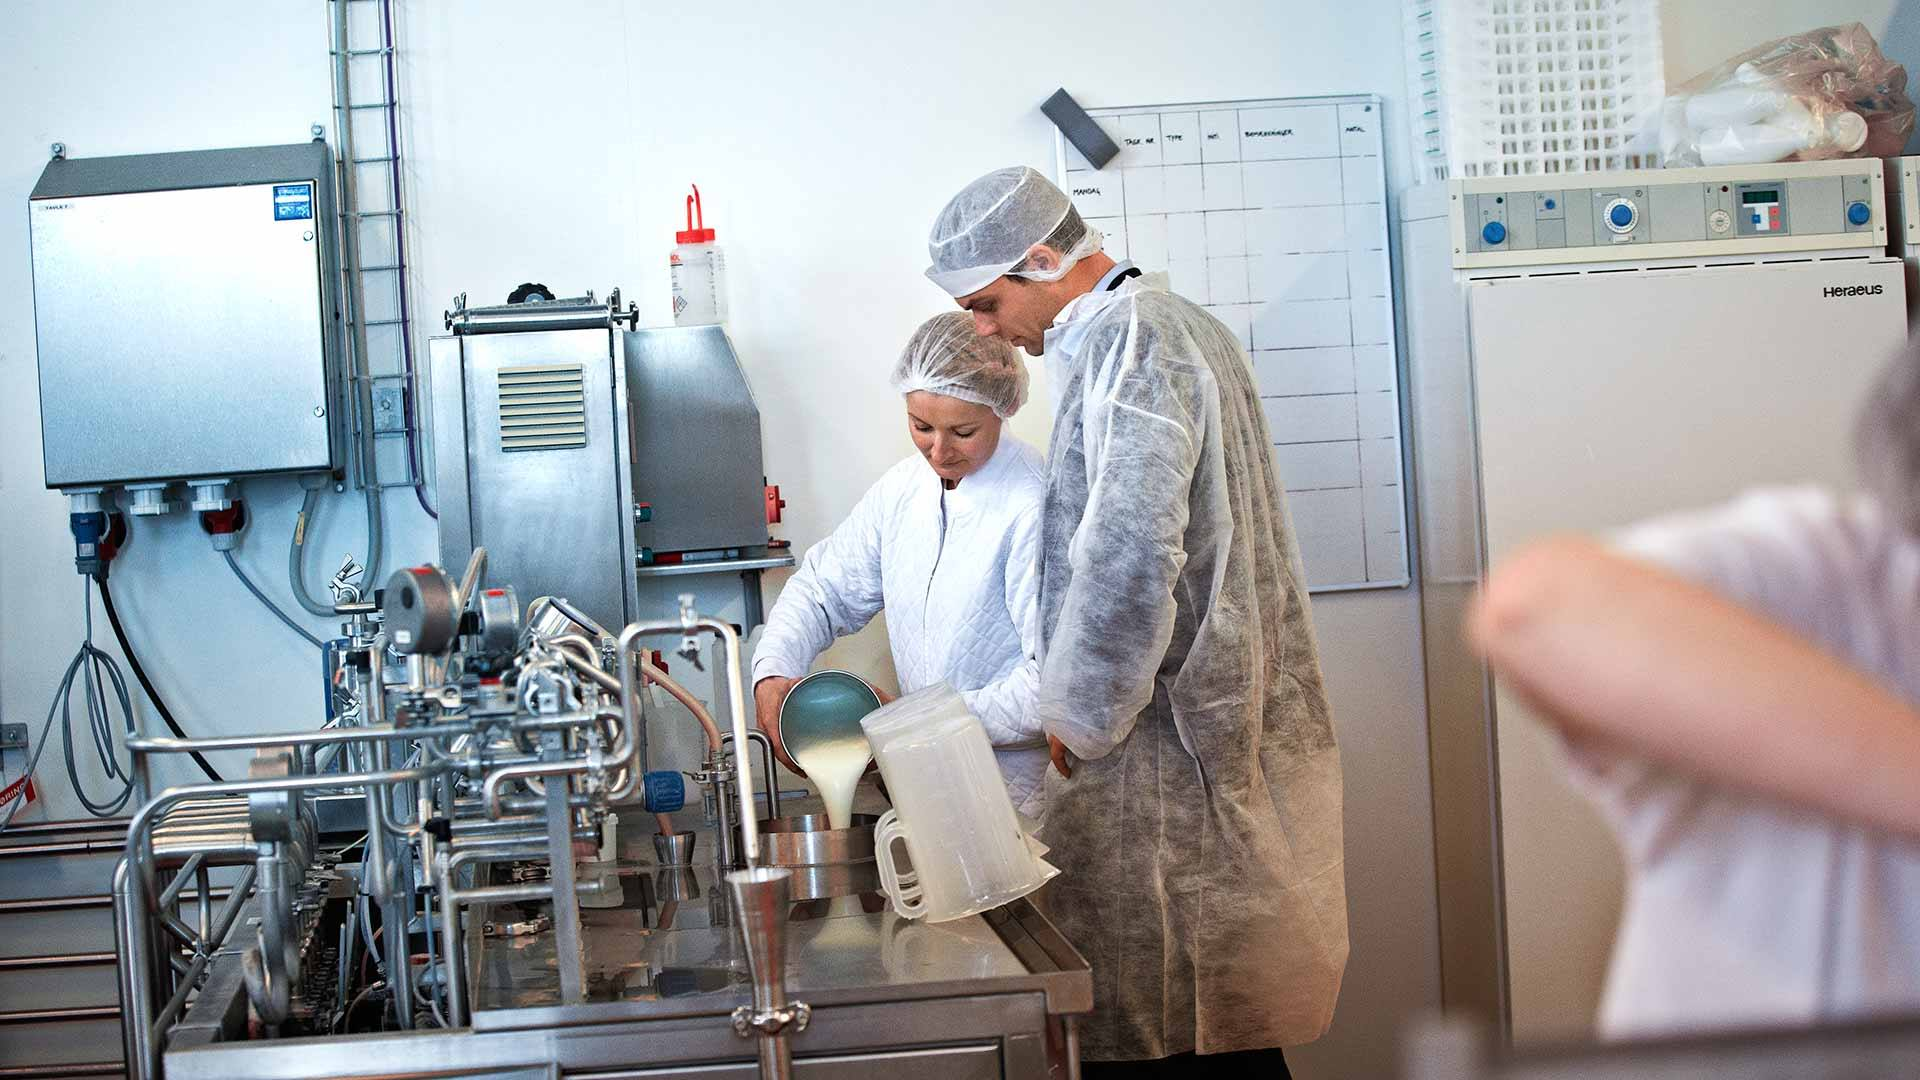 Innovation is at the heart of what we do at Arla Foods Ingredients